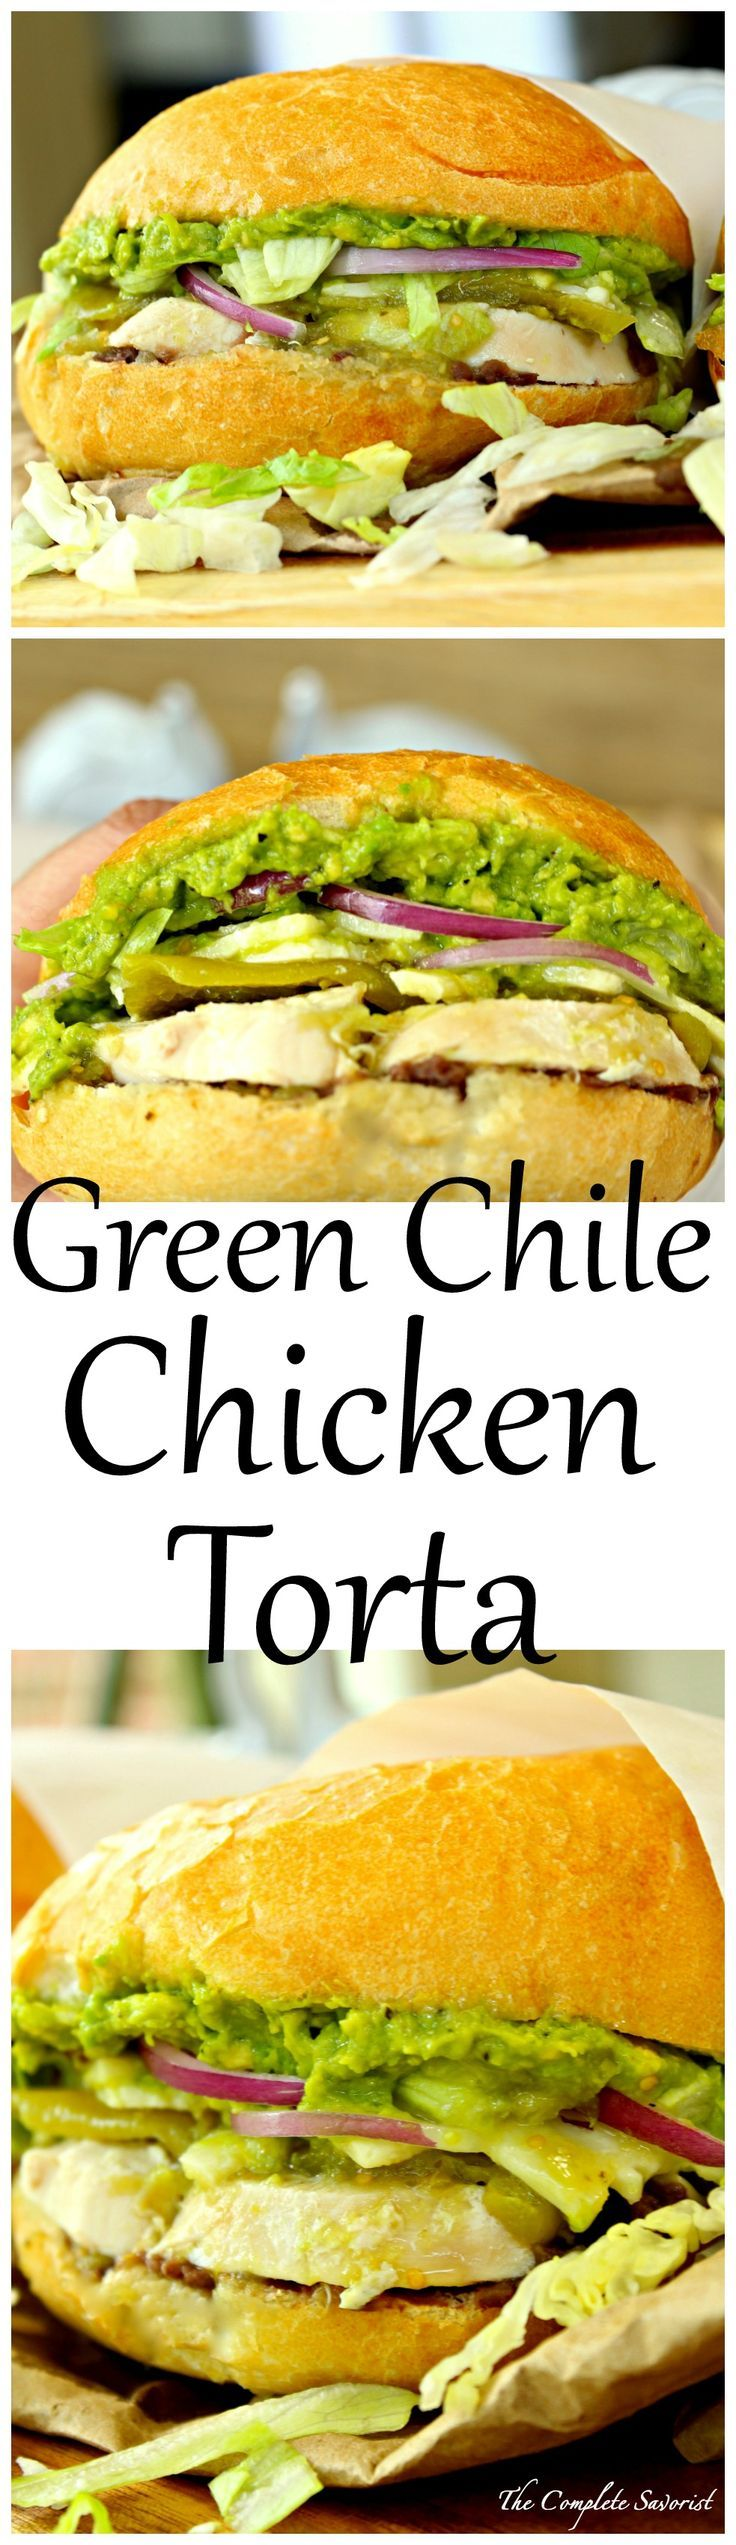 Green Chile Chicken Tortas ~ Mexican-style sandwiches loaded with chicken, green chile peppers, refried black beans, cheese, and avocado spread; hearty, delicious, and affordable